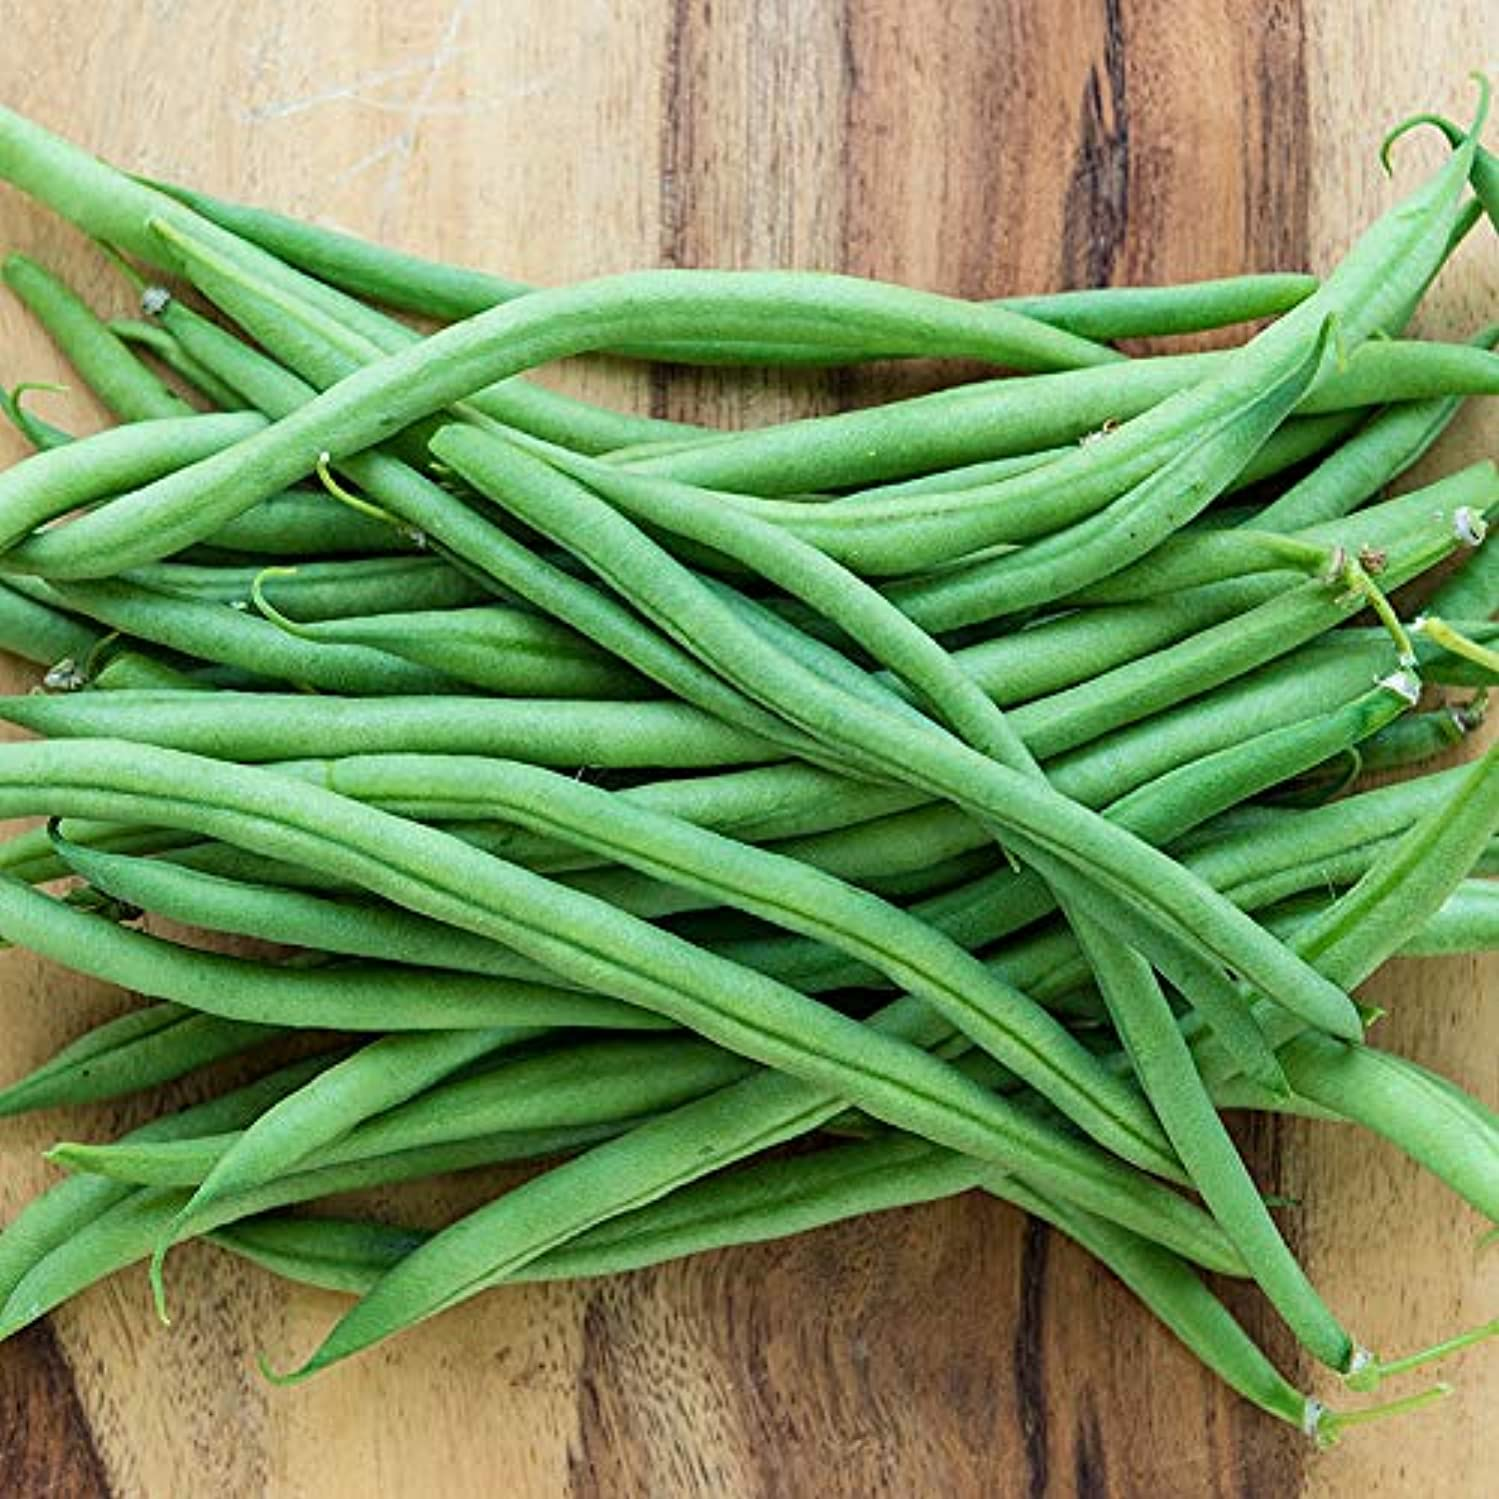 Tendergreen Green Bean Seeds, 50+ Premium Heirloom Seeds, Fantastic Addition to Your Home Garden! Bush Bean, (Isla's Garden Seeds), Non GMO, 85-90% Germination Rates, Seed